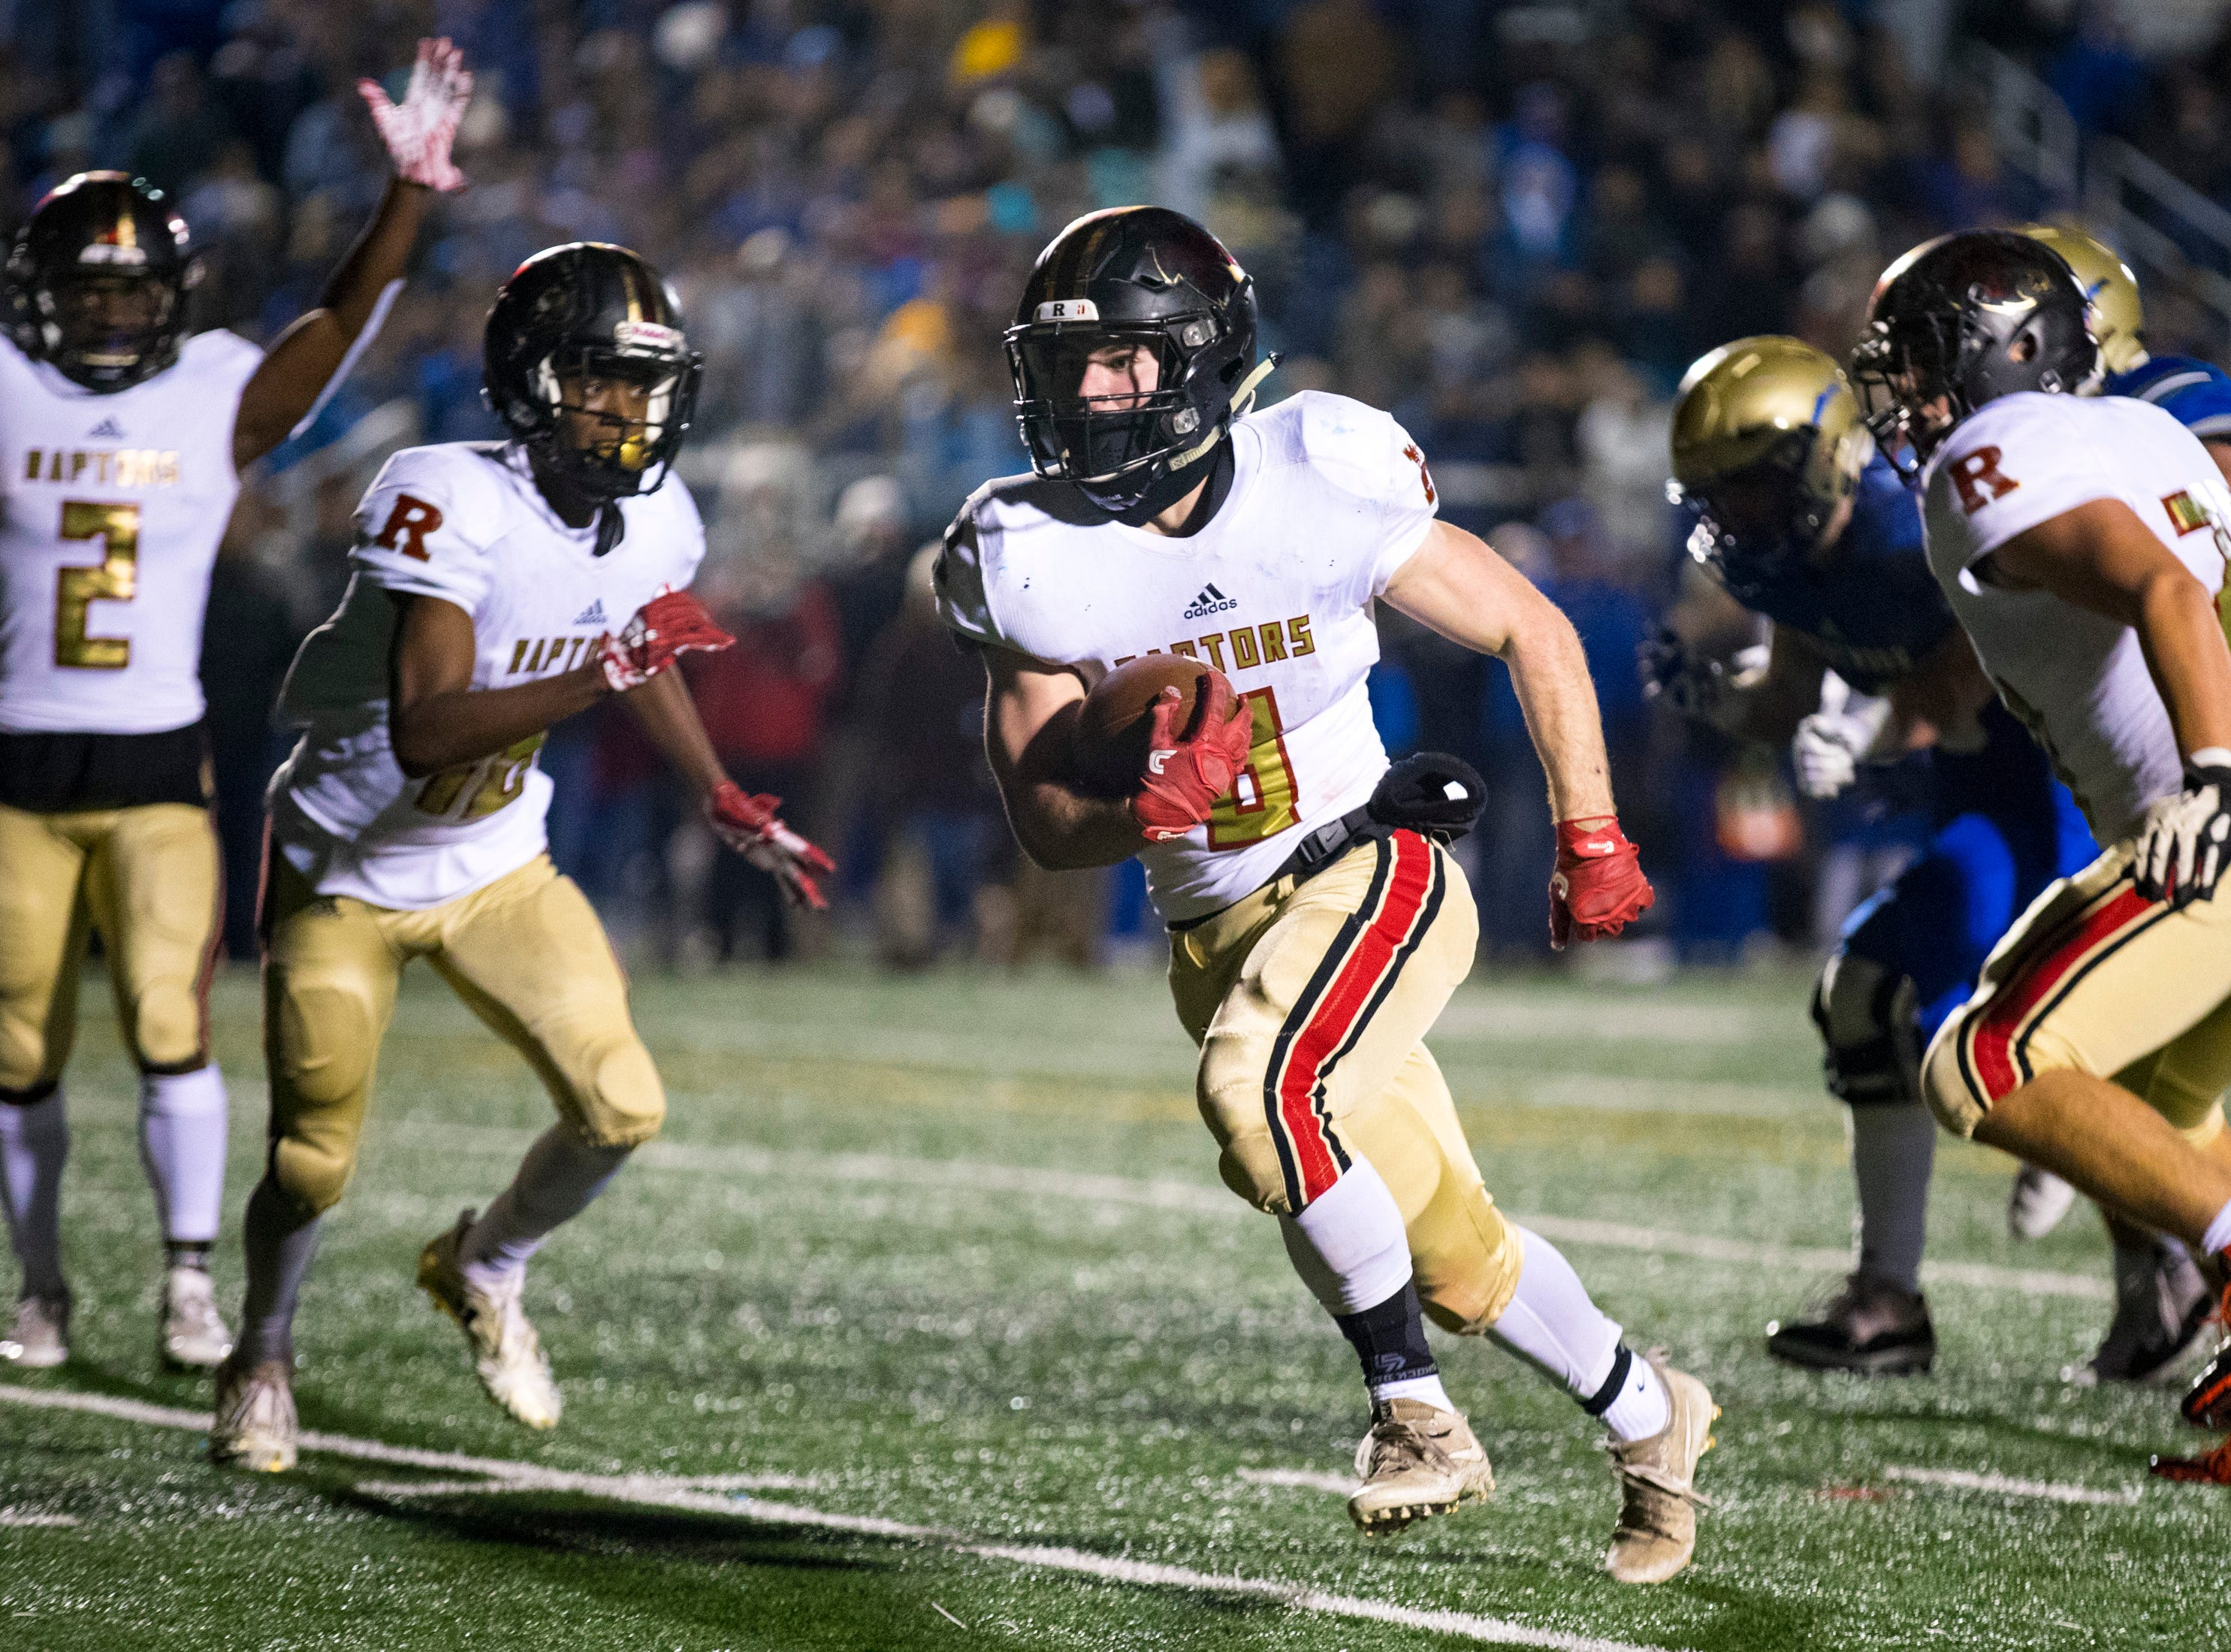 Ravenwood's Rodney Baine (8) runs into the endzone during Brentwood's game against Ravenwood at Brentwood High School in Brentwood on Friday, Nov. 16, 2018.